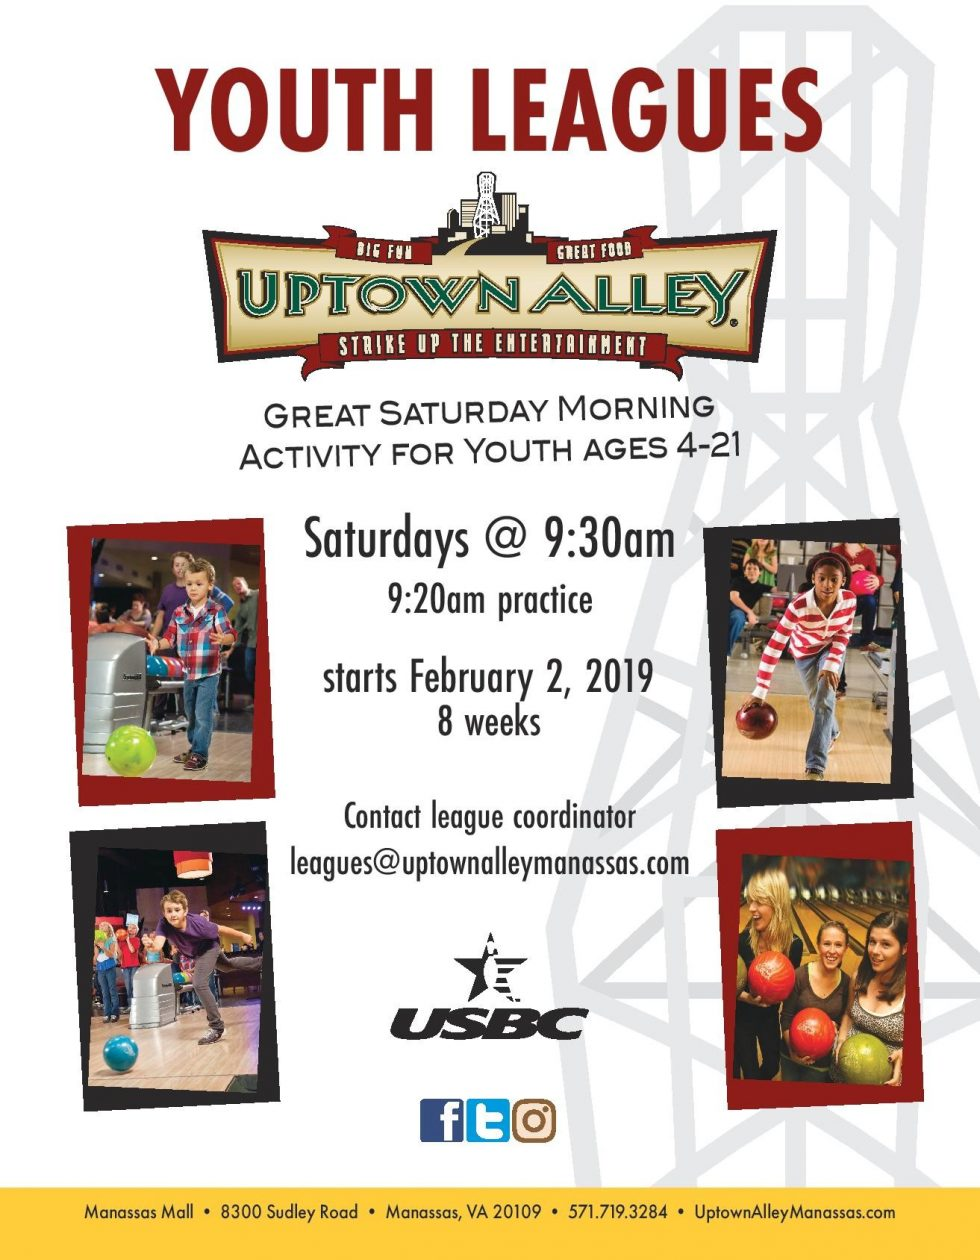 Uptown Alley Youth Leagues